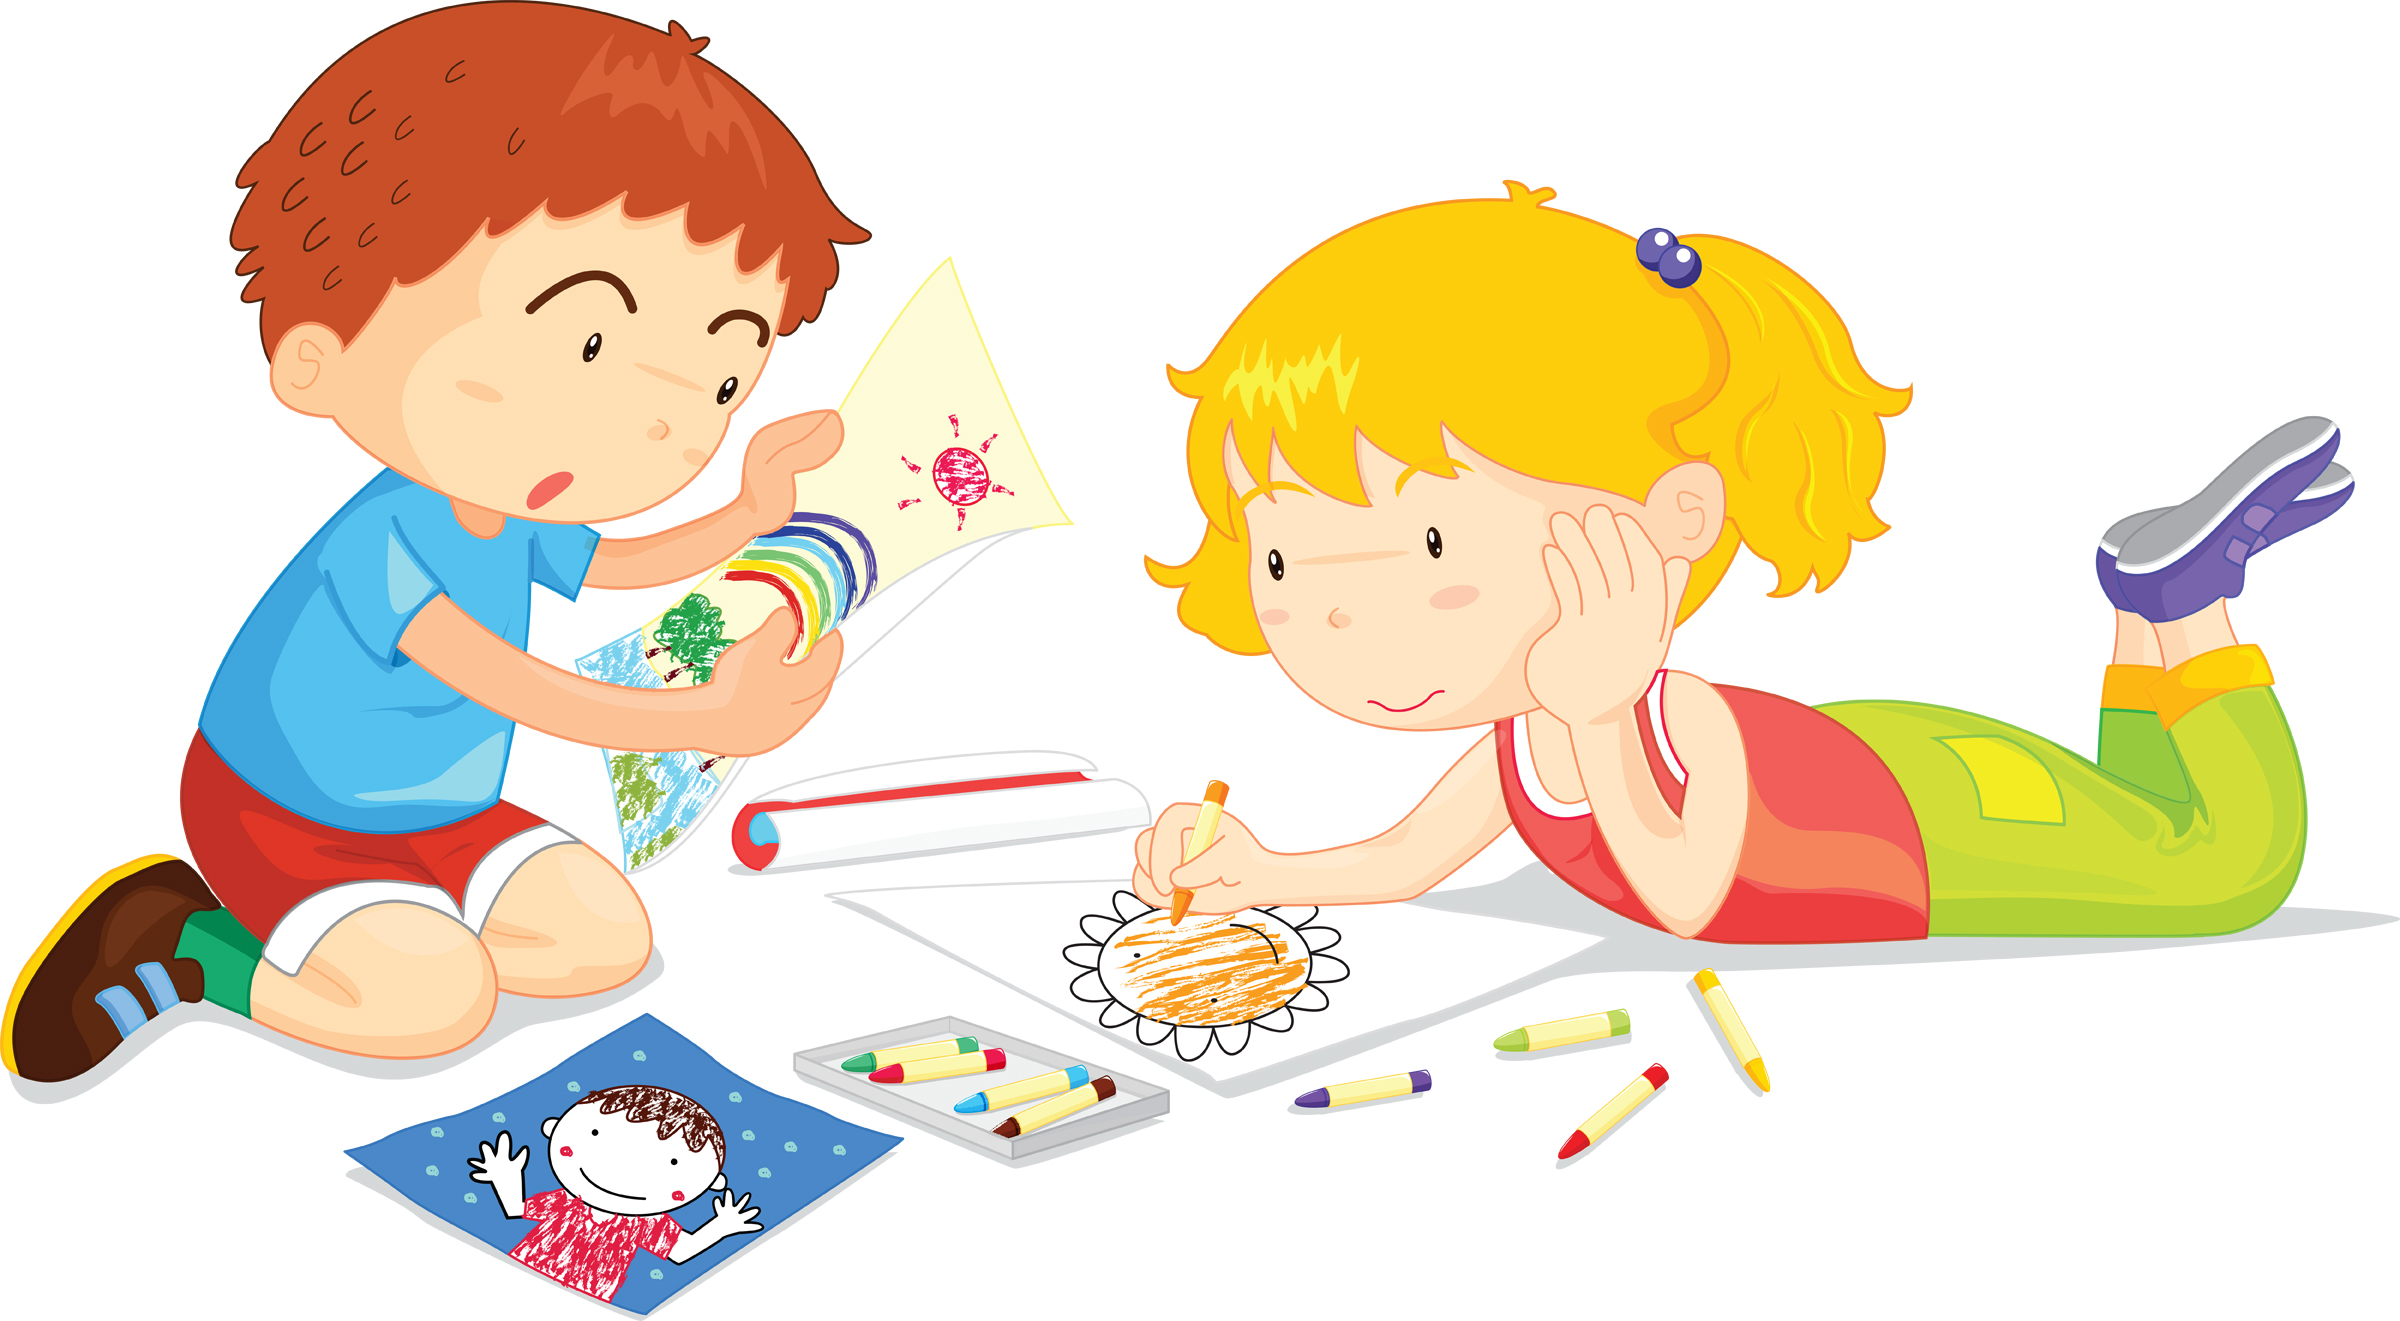 ChildrenDrawing